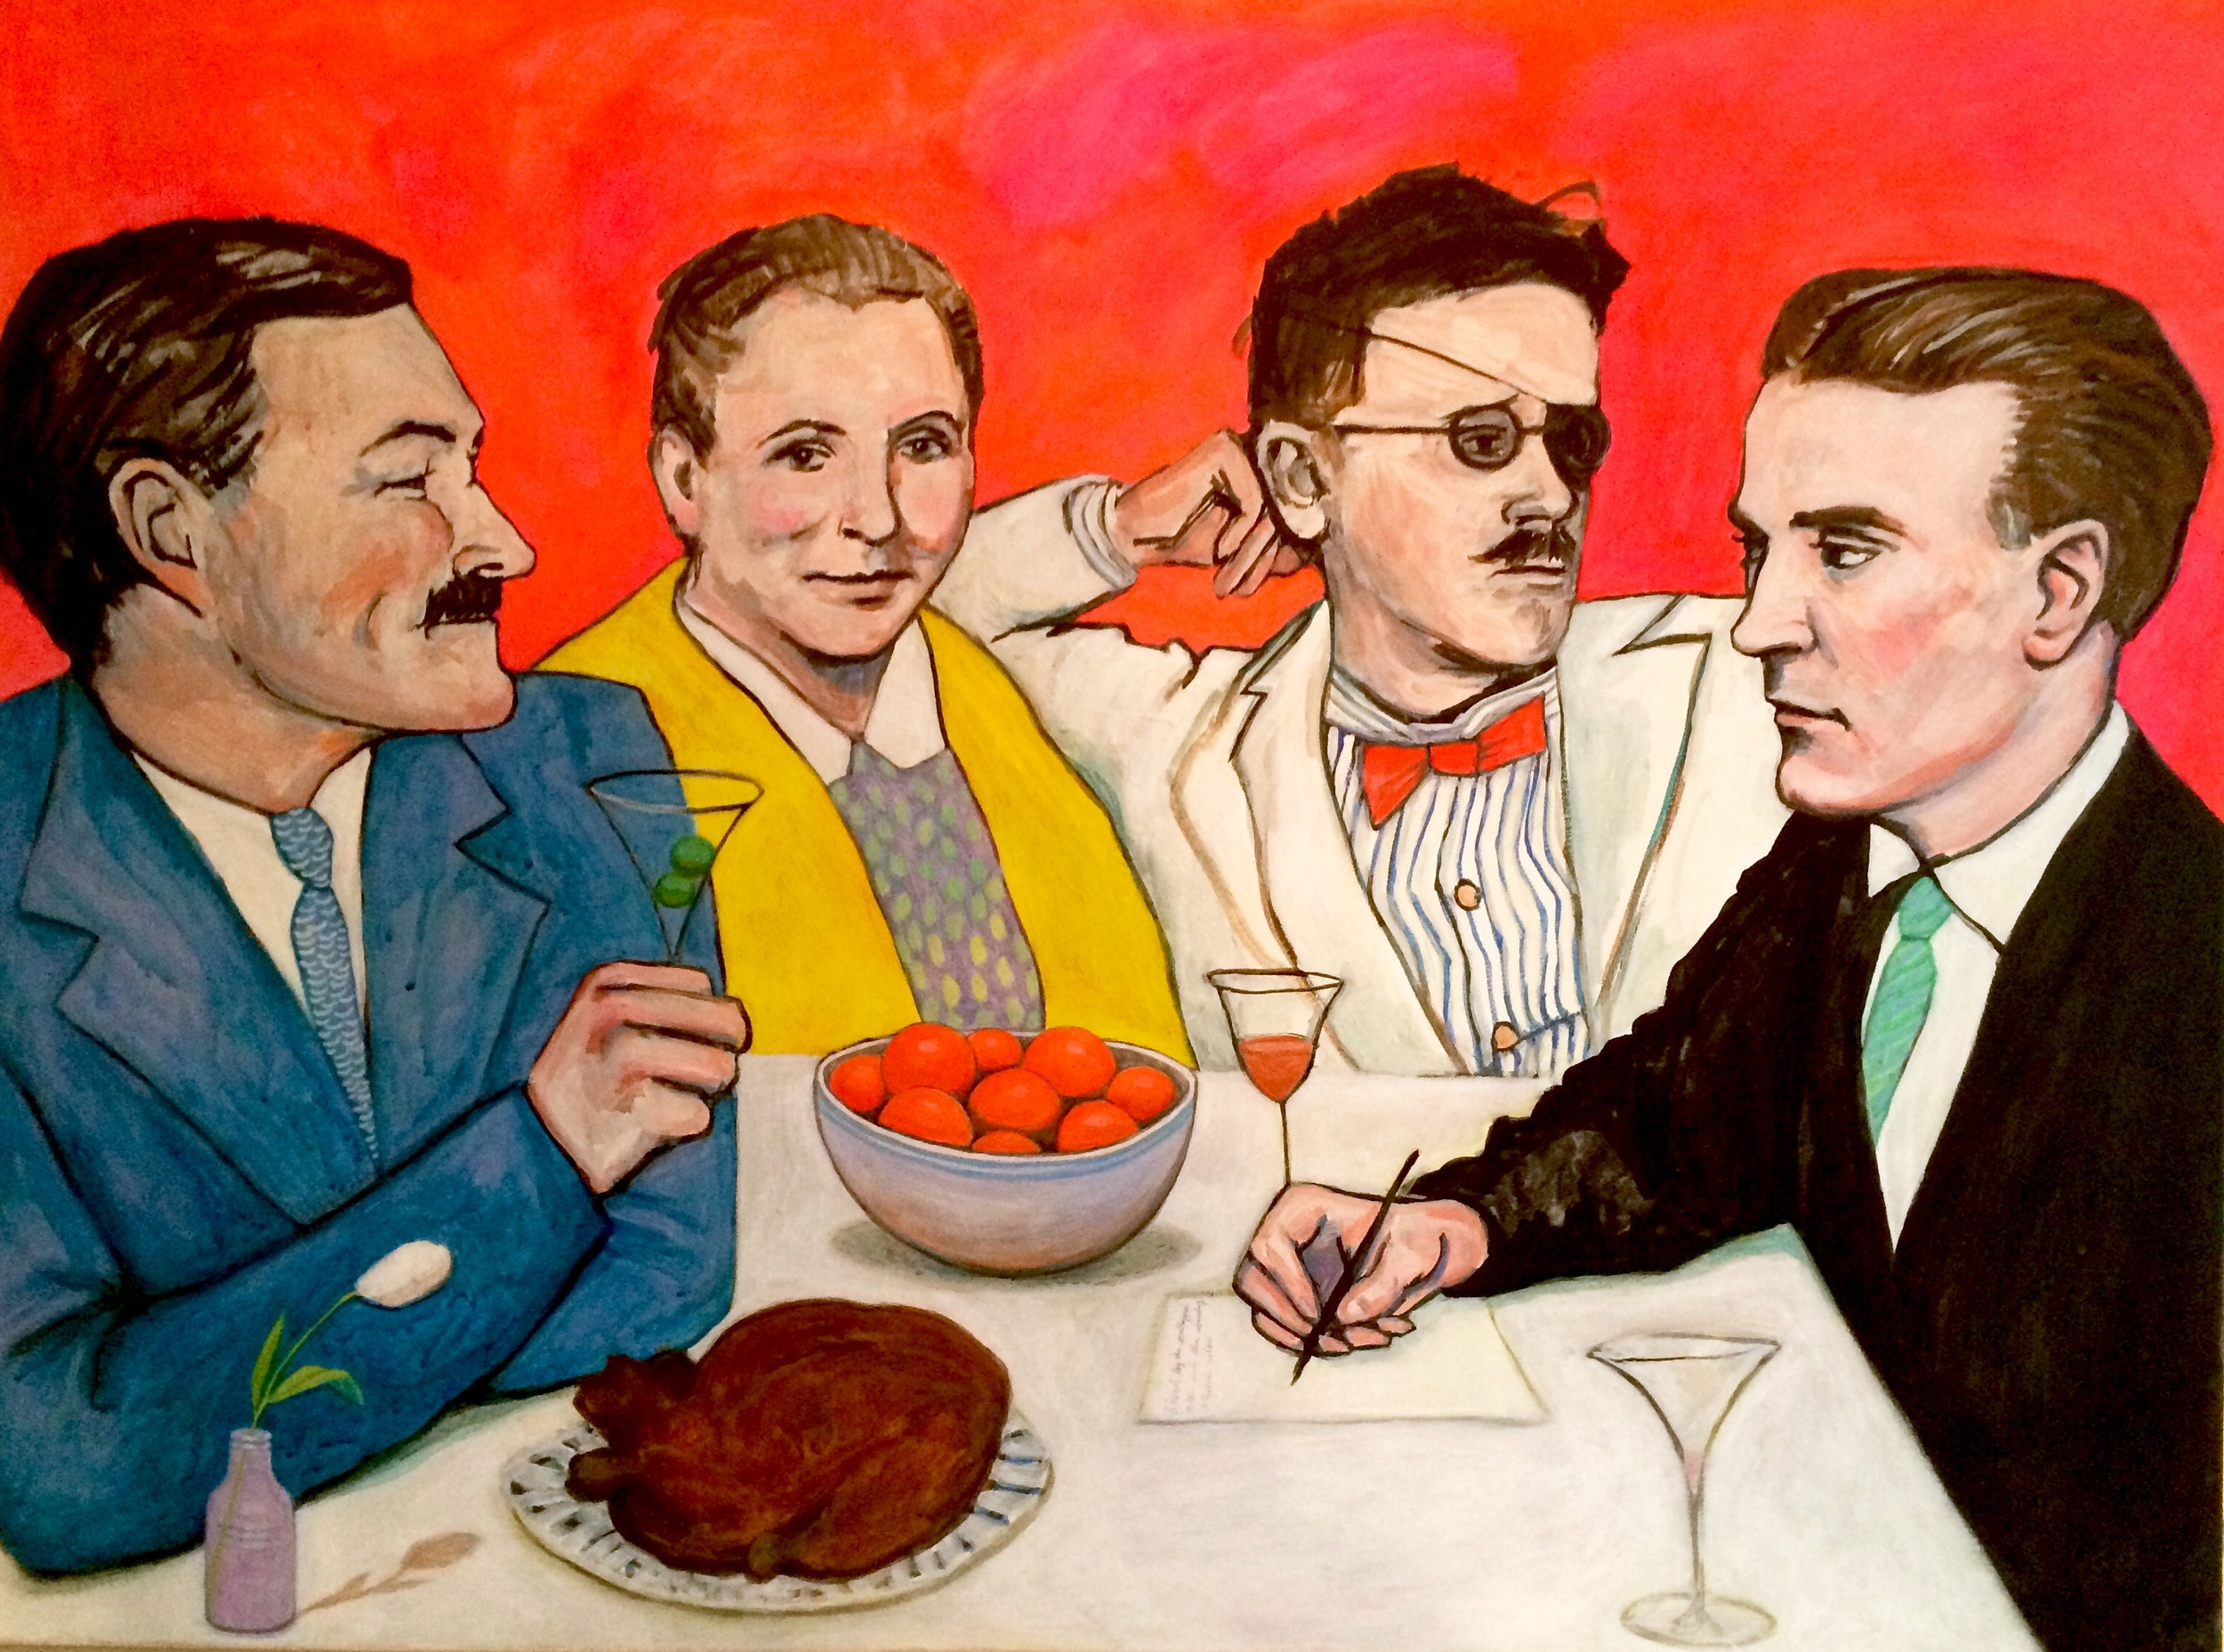 """(sold)    SPARTANS' FEAST: ERNEST HEMINGWAY, GERTRUDE STEIN, JAMES JOYCE, AND F. SCOTT FITZGERALD    acrylic, gouache, and watercolor on canvas, 30 x 40"""", 2016"""